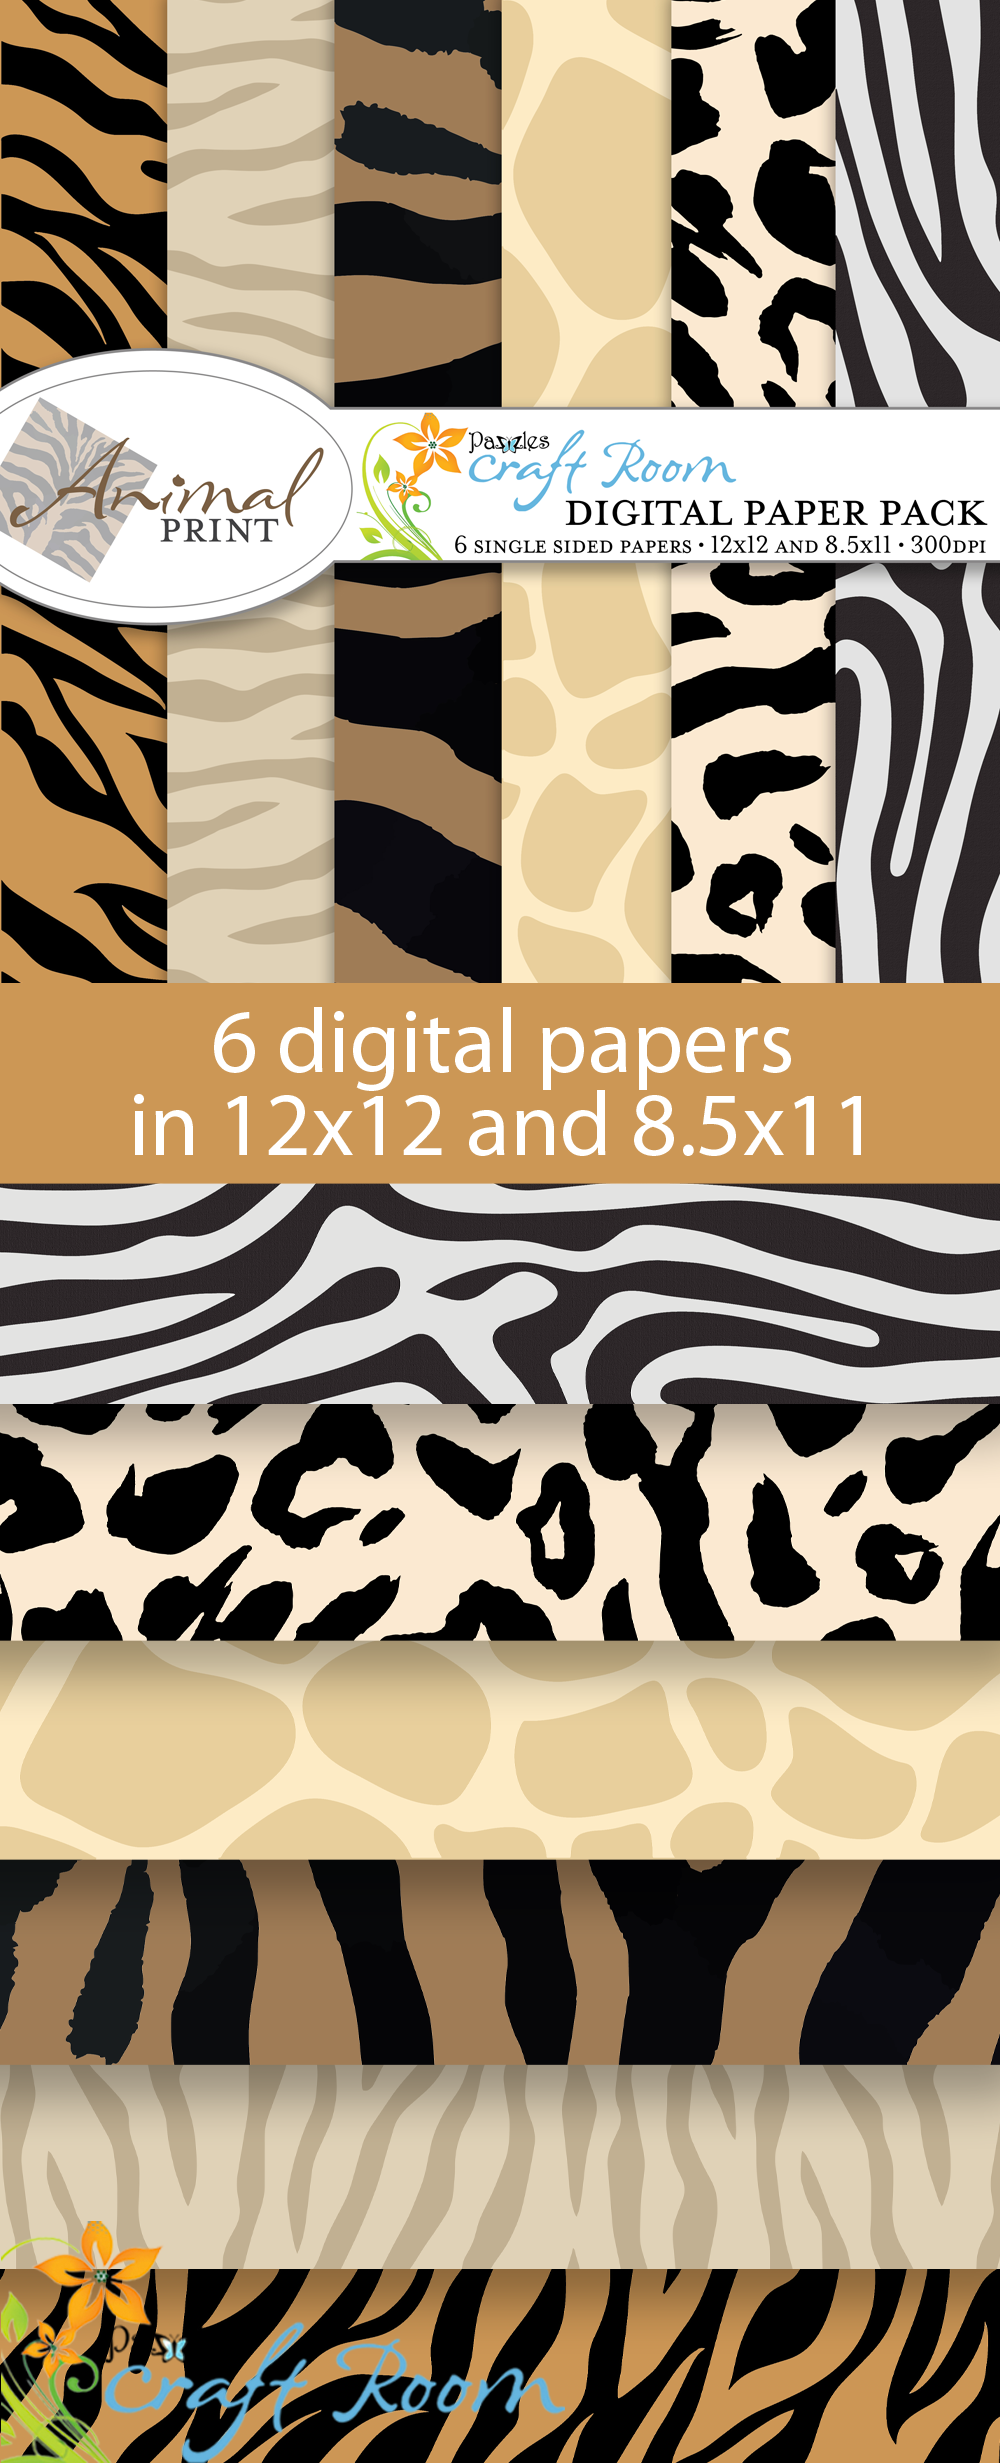 Pazzles Animal Print Digital Paper Pack with instant download.